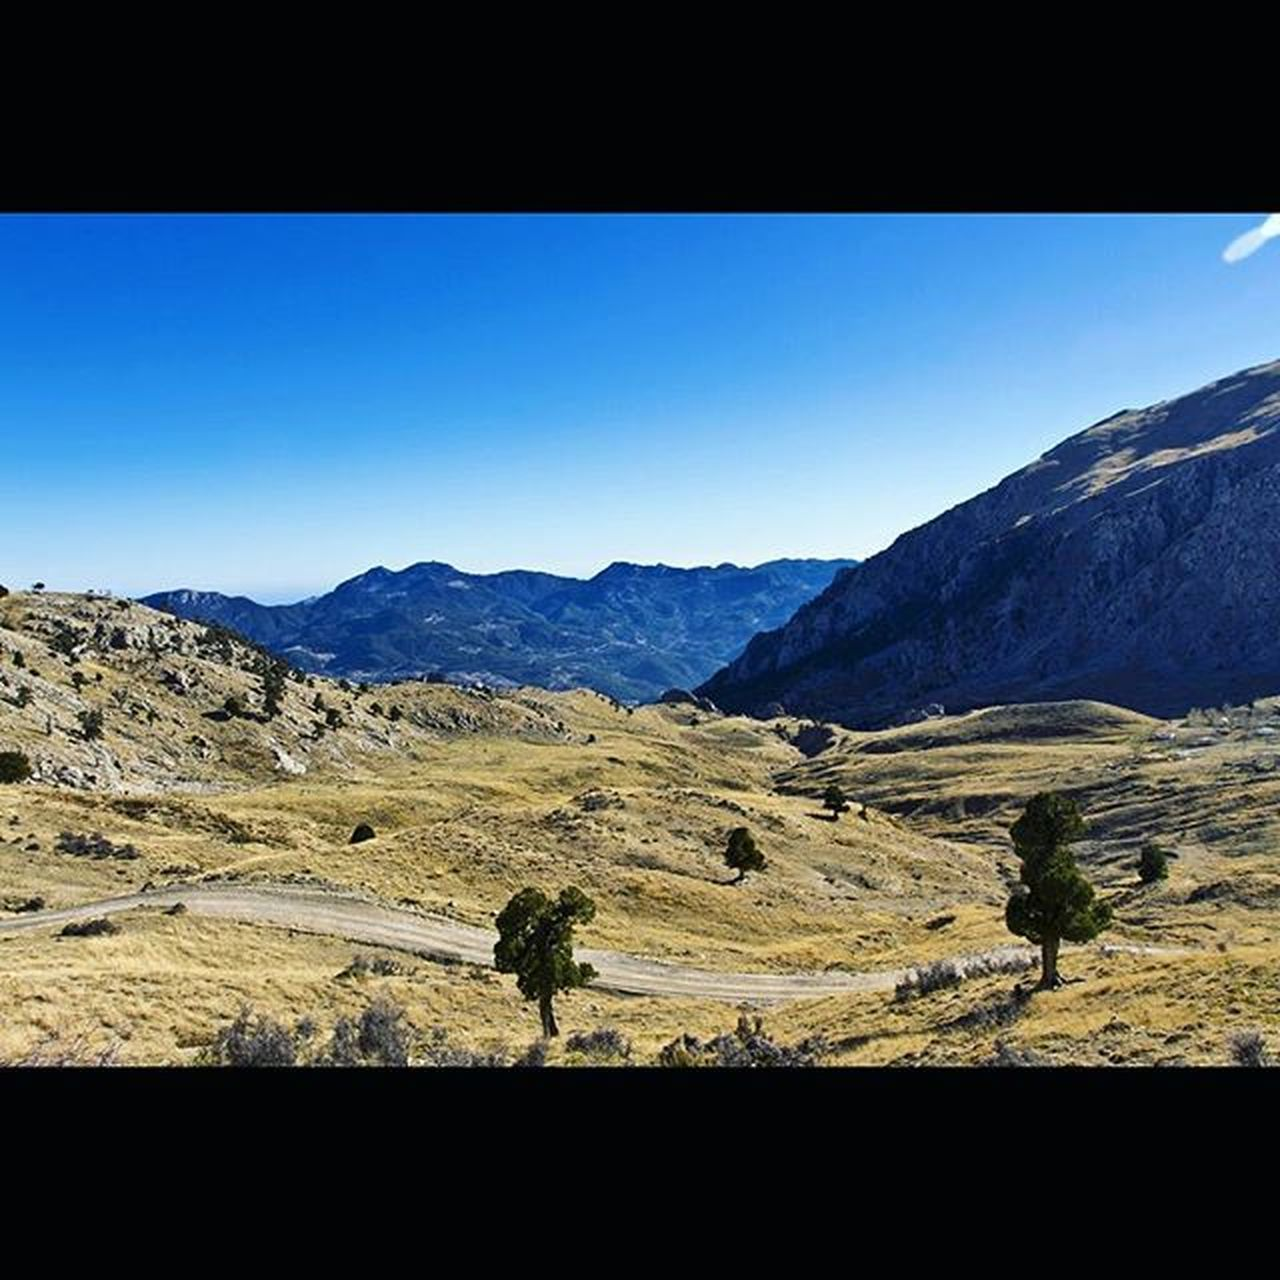 2300mt Antalya Feslikan Plateau Nature Sky Skyporn Beauty Weather Photo Instagrammers Igers Tagsforlikes Follow Comment ShoutOut Android Instagood Exposure Composition Focus Capture Thevividworld Naturelovers Landscape canon 7D photooftheday picoftheday catching_beauty_shots